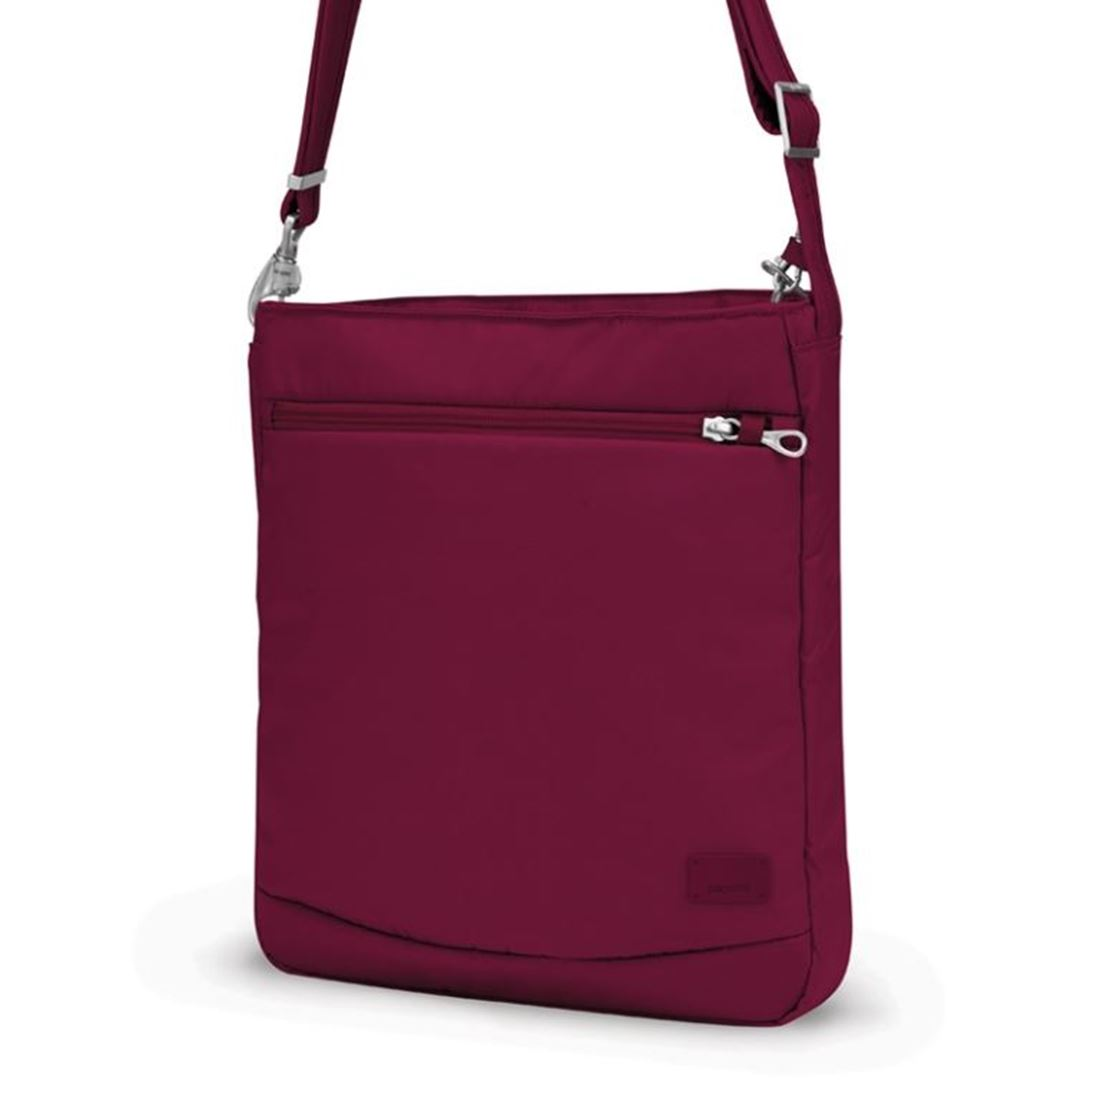 Picture of Pacsafe Citysafe CS175 Shoulder Bag - Cranberry